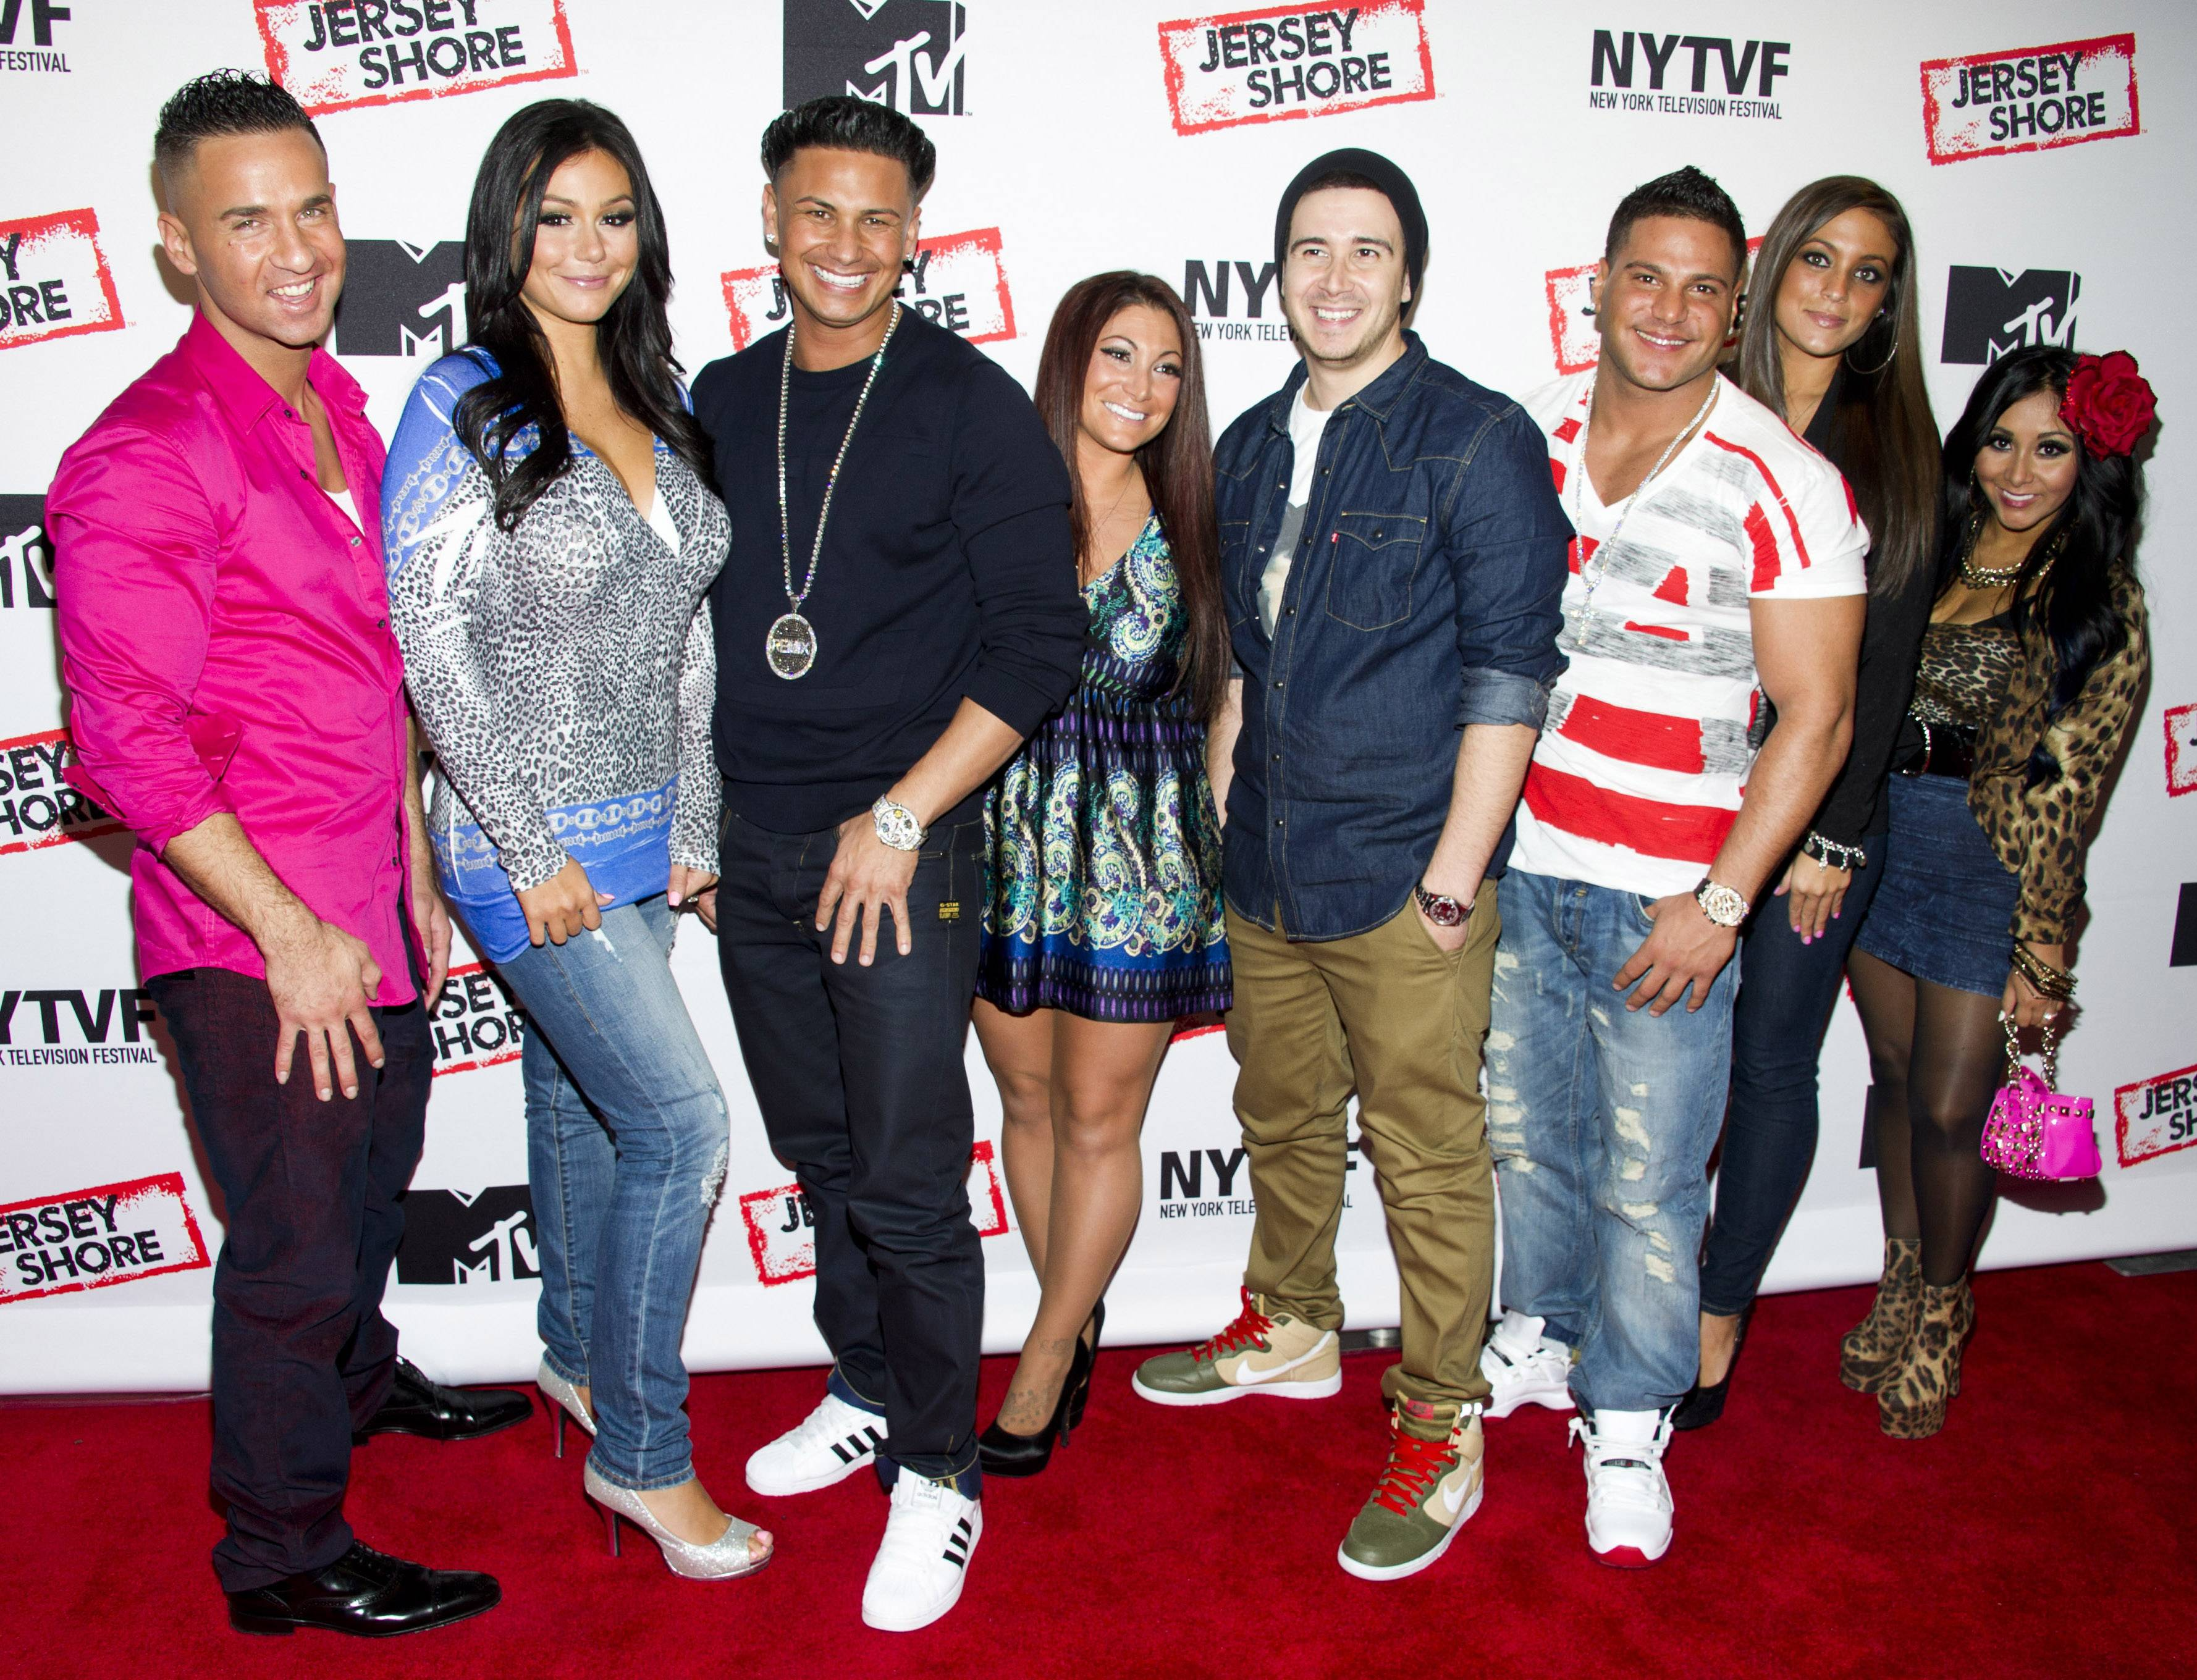 "The cast of ""Jersey Shore"" is doing it all again for a special on the E! Network. ""Reunion Road Trip: Return to the Jersey Shore"" brings the gang back together for the first time in five years — Mike ""The Situation"" Sorrentino, Jenni ""JWoww"" Farley, Paul ""Pauly D"" Delvecchio, Deena Cortese, Vinny Guadagnino, Ronnie Ortiz-Magro, Sammi ""Sweetheart"" Giancola and Nicole ""Snooki"" Polizzi."